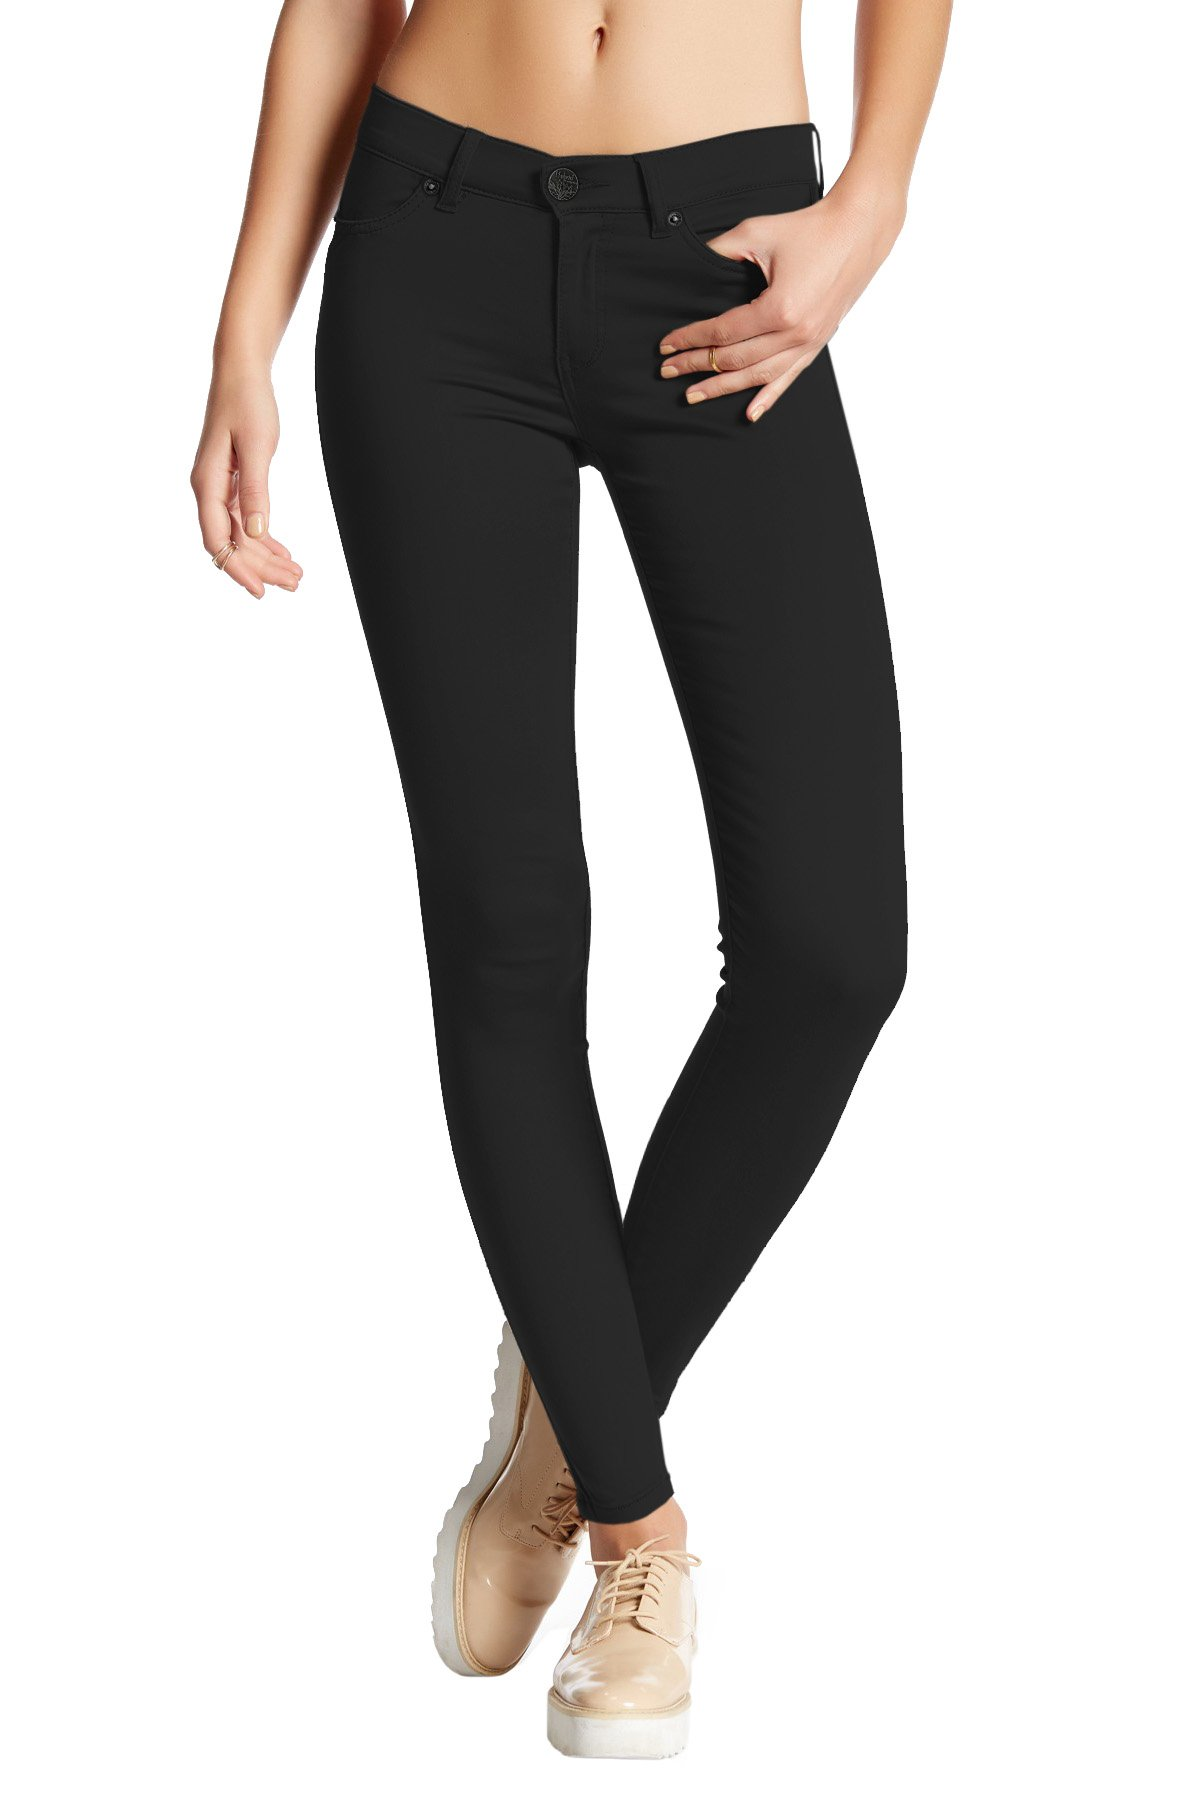 HyBrid & Company Womens Super Stretch Comfy Skinny Pants P44876SKX Black 1X